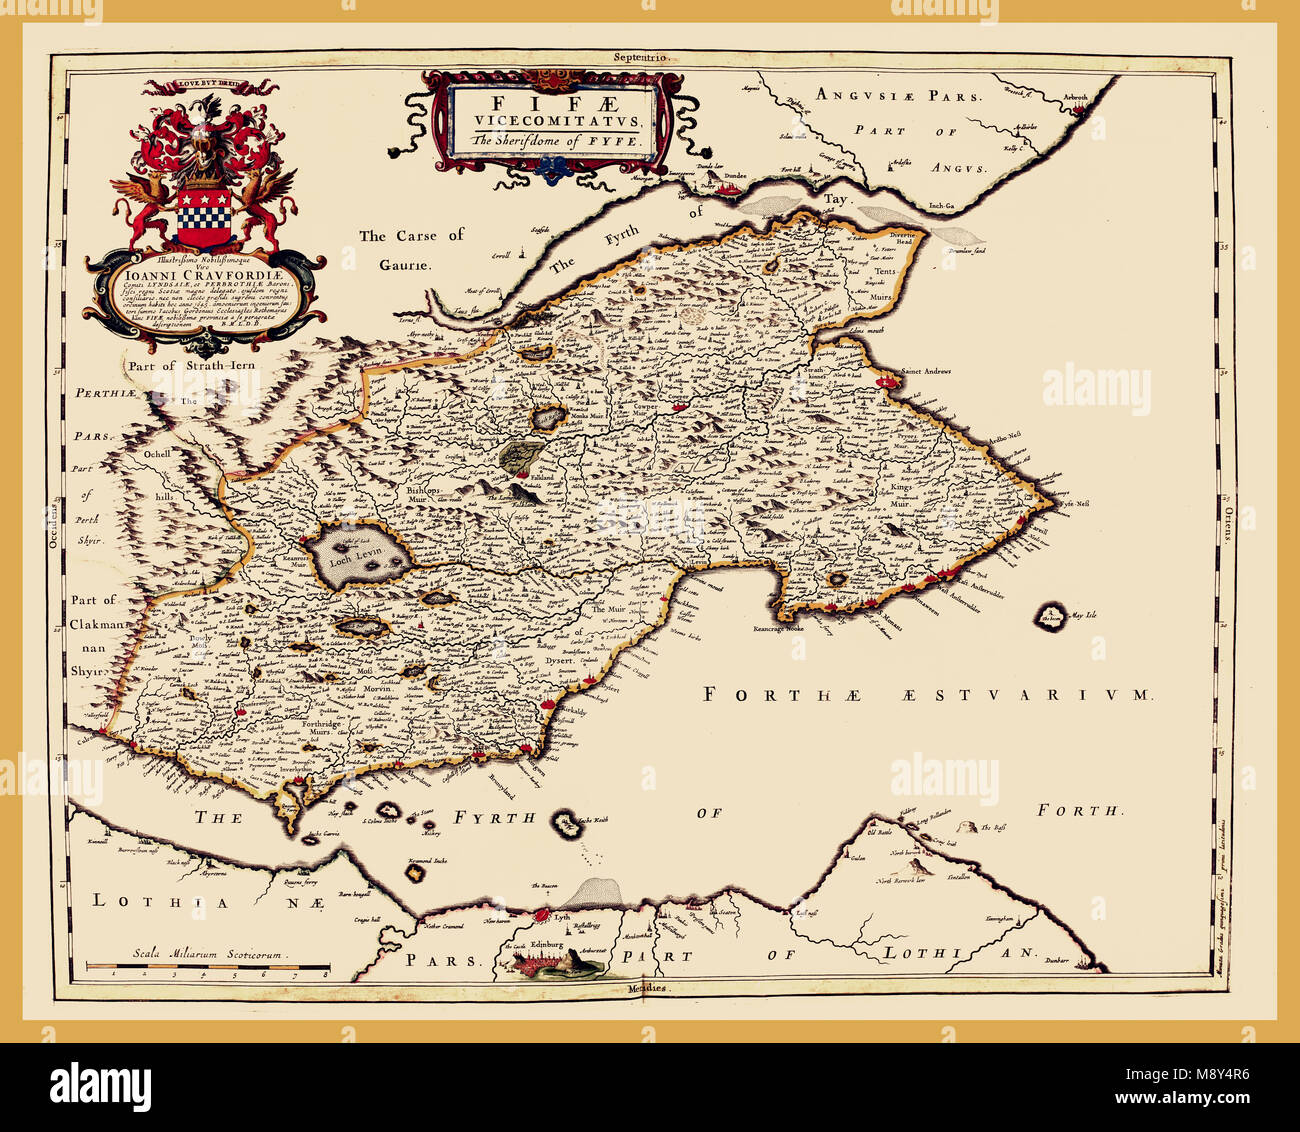 Fife Old County Map Johan Blaeu 1654